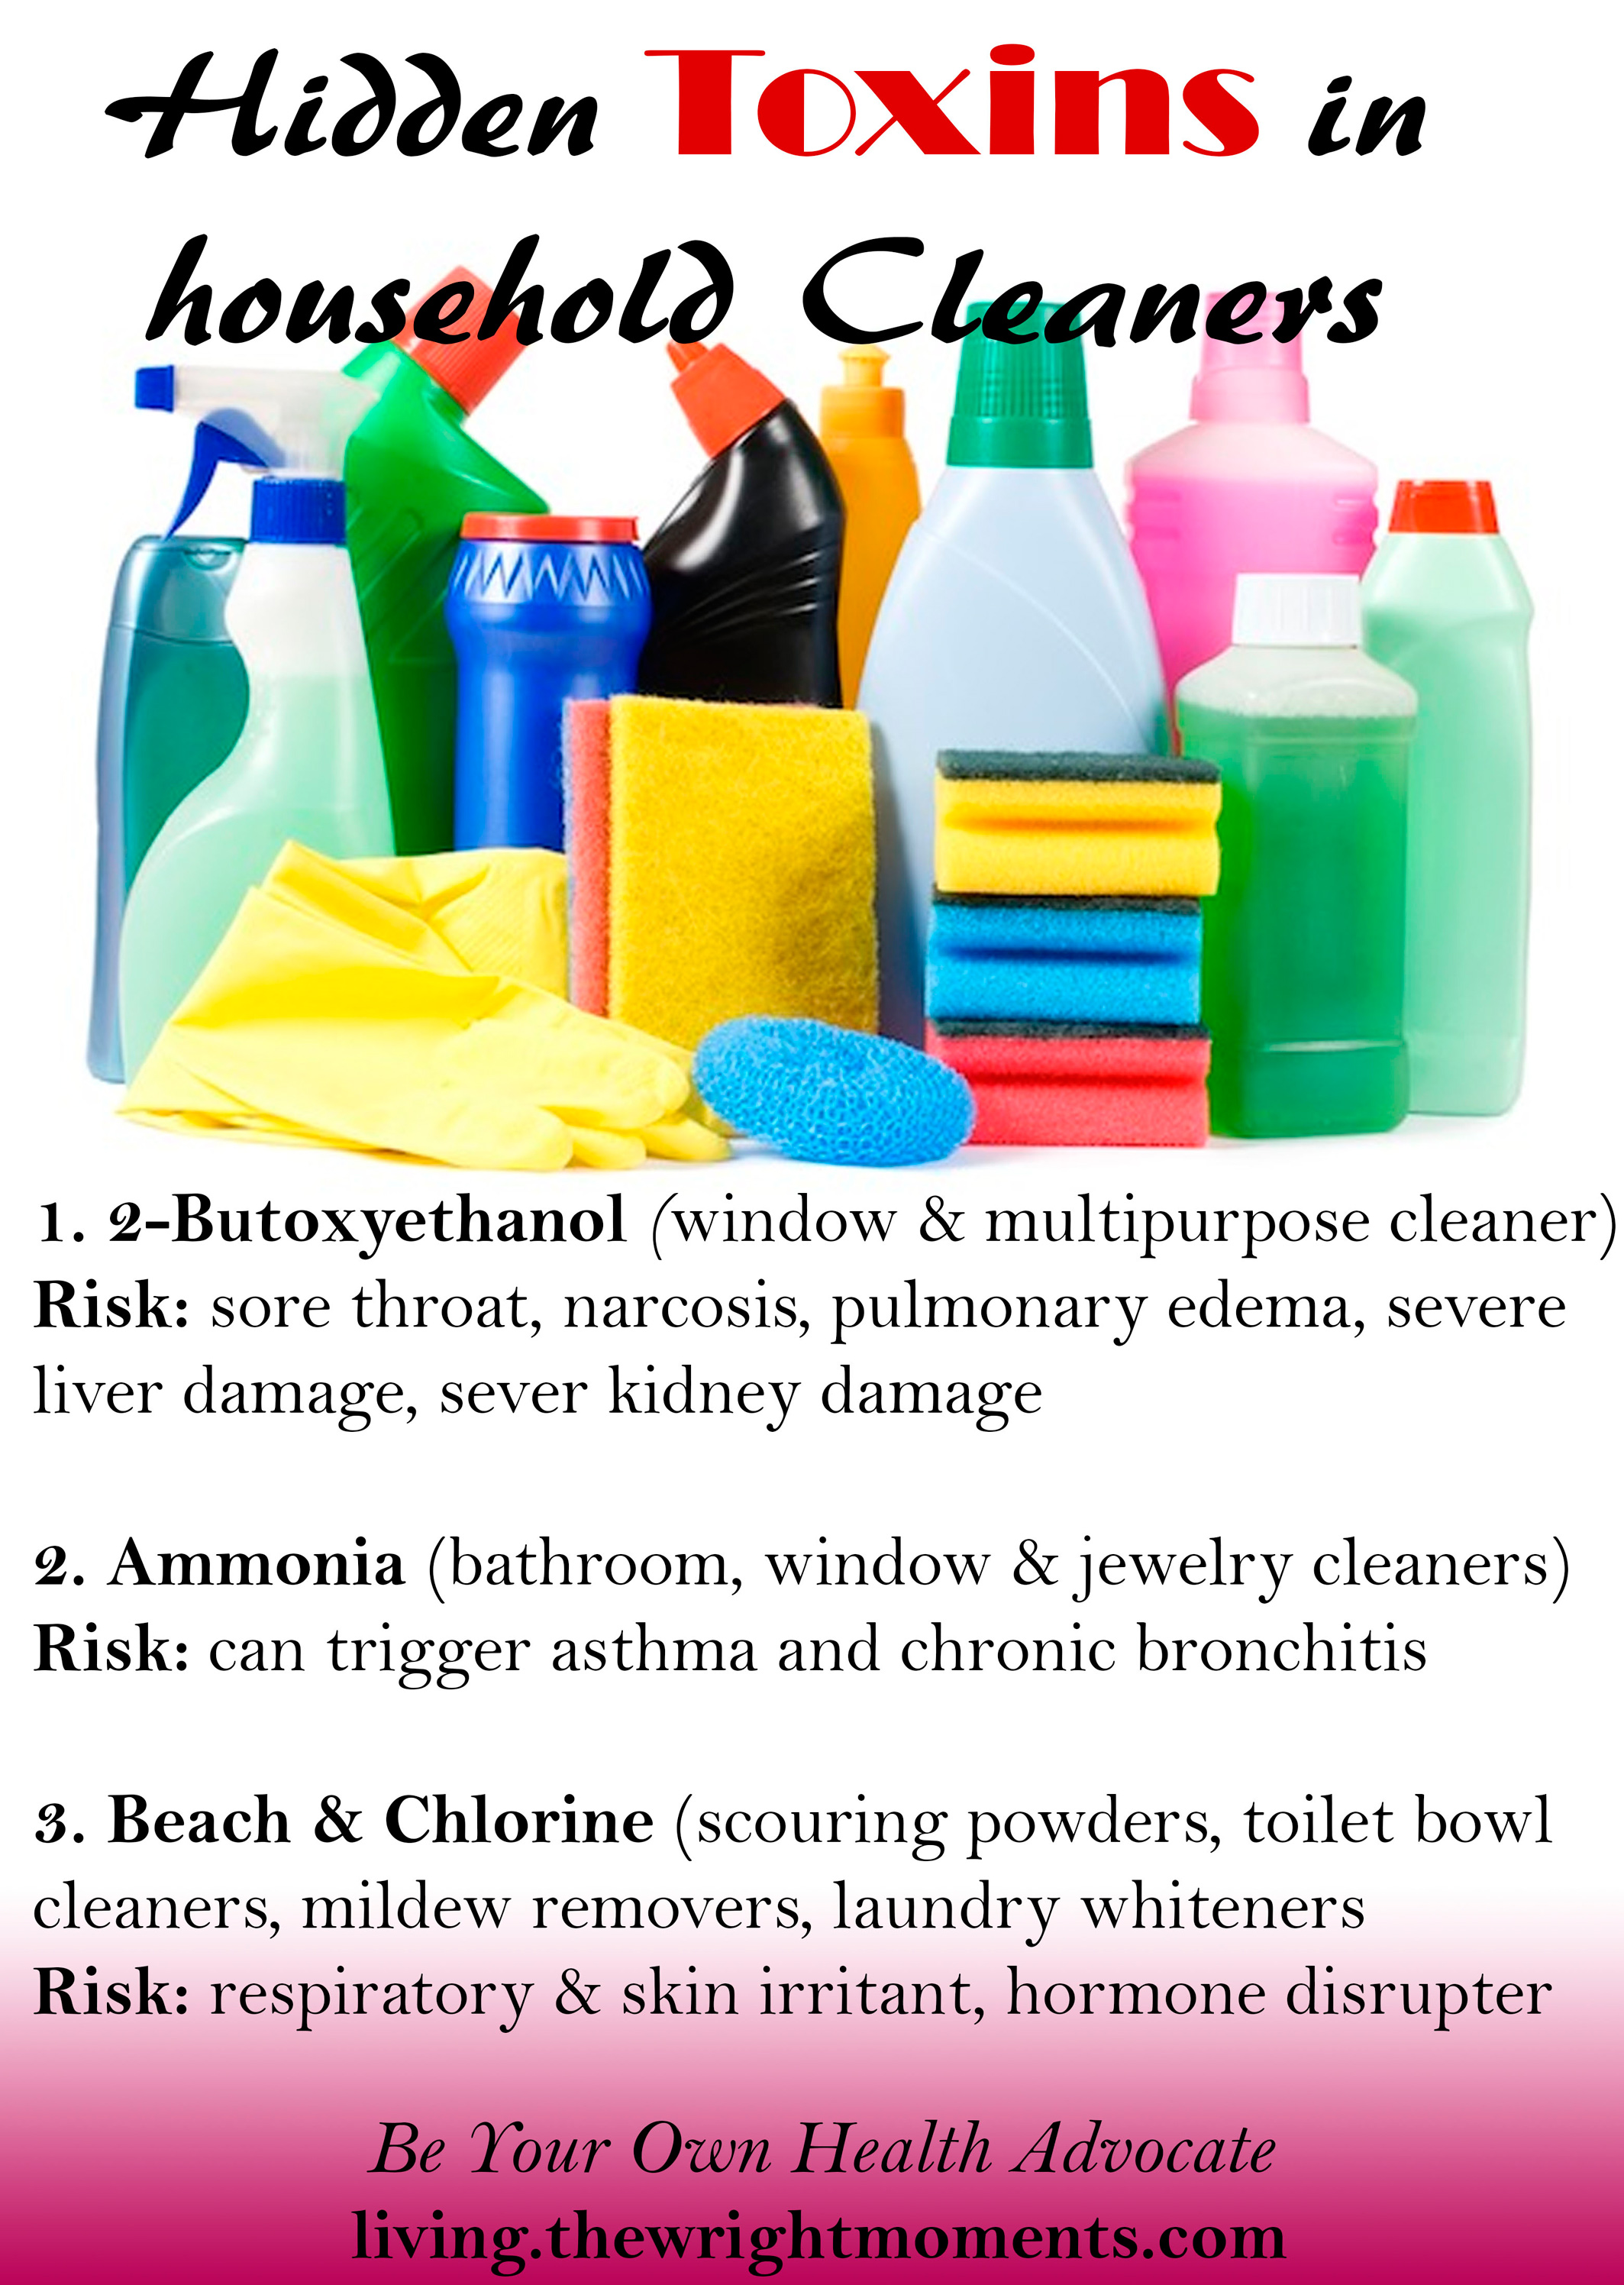 hiddedn-toxins-in-household-cleaner